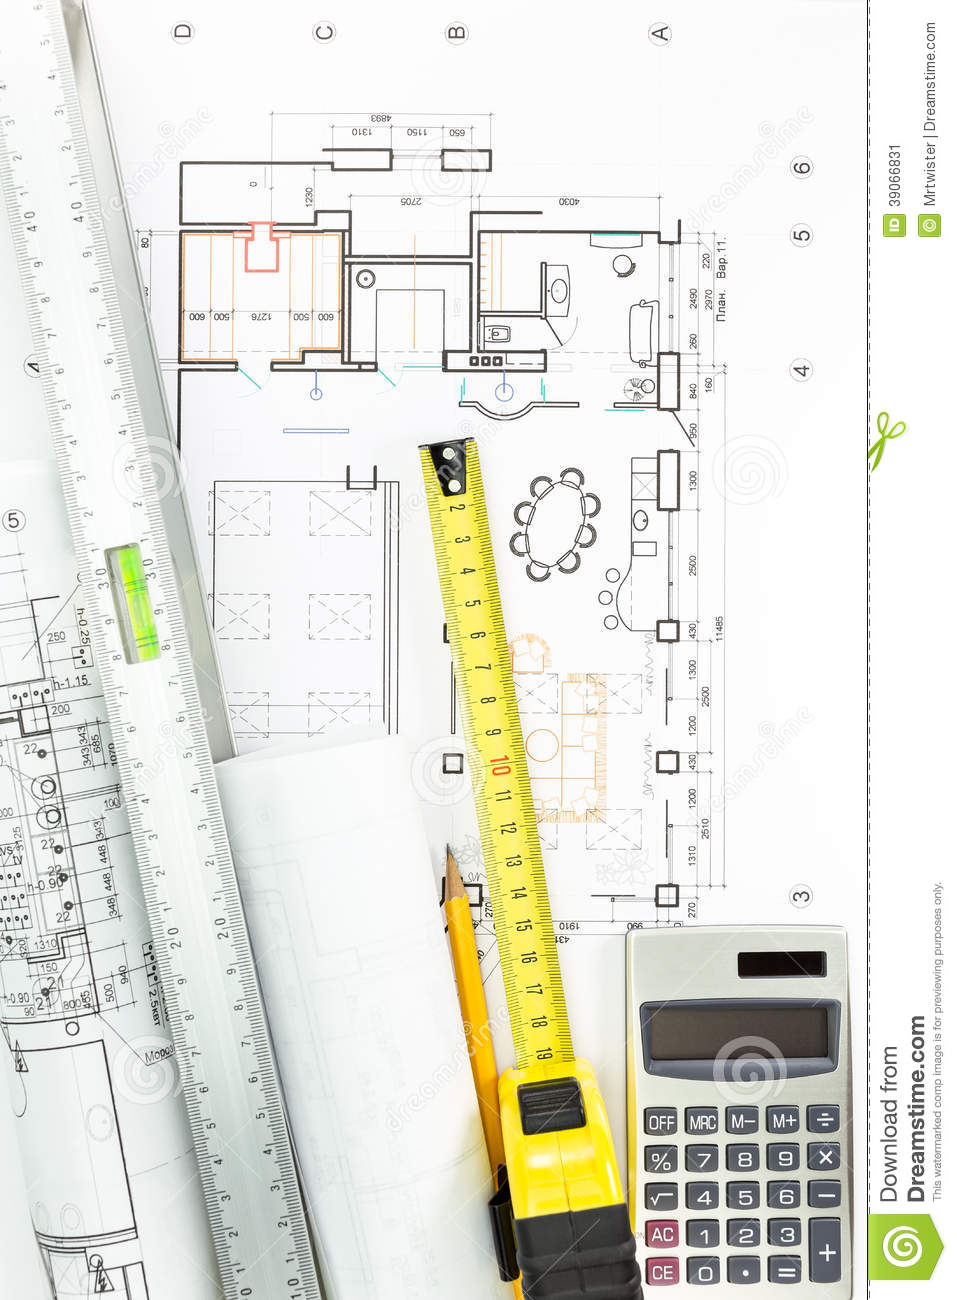 Architectural drawing detail and measurement tools stock for Build a house calculator free